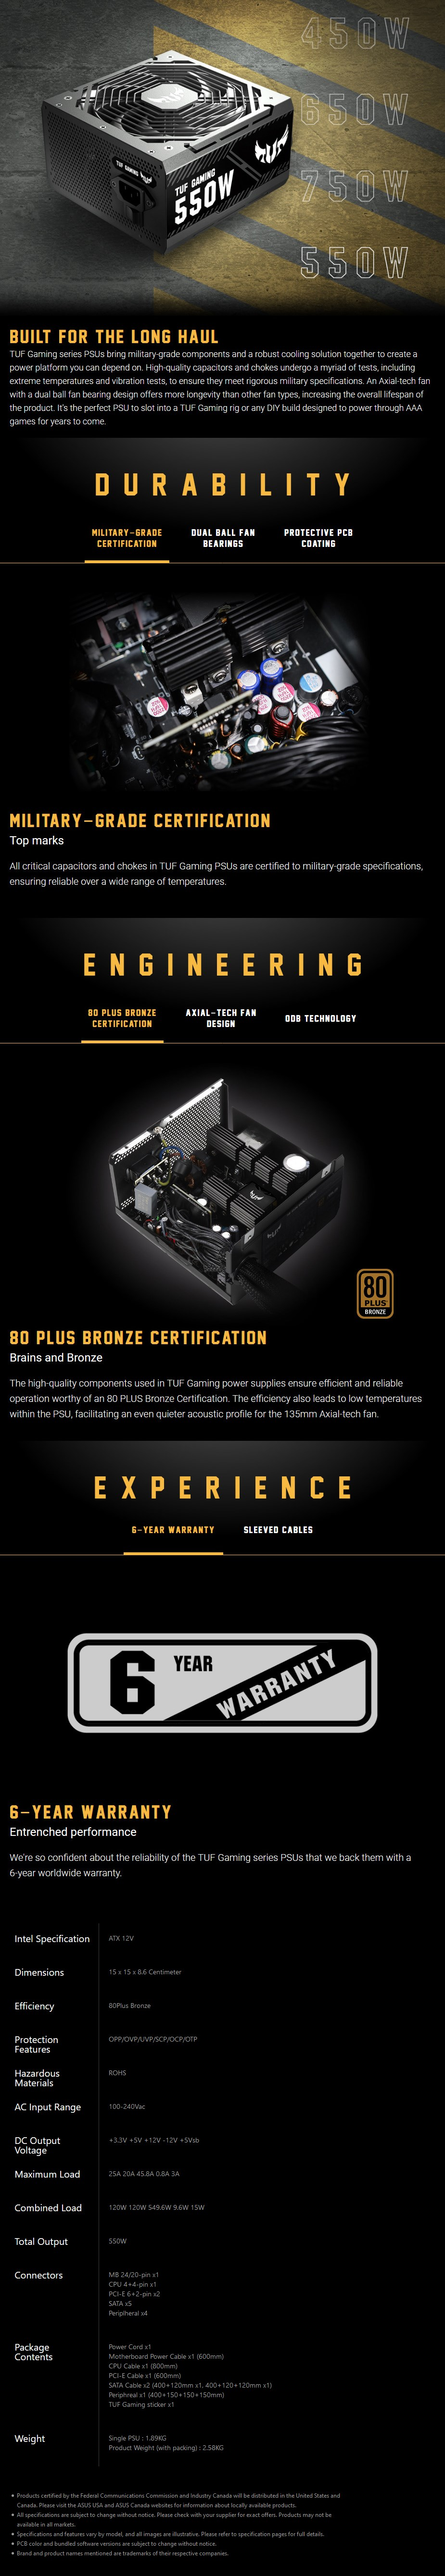 ASUS TUF Gaming 550W 80+ Bronze Non Modular Power Supply - Overview 1